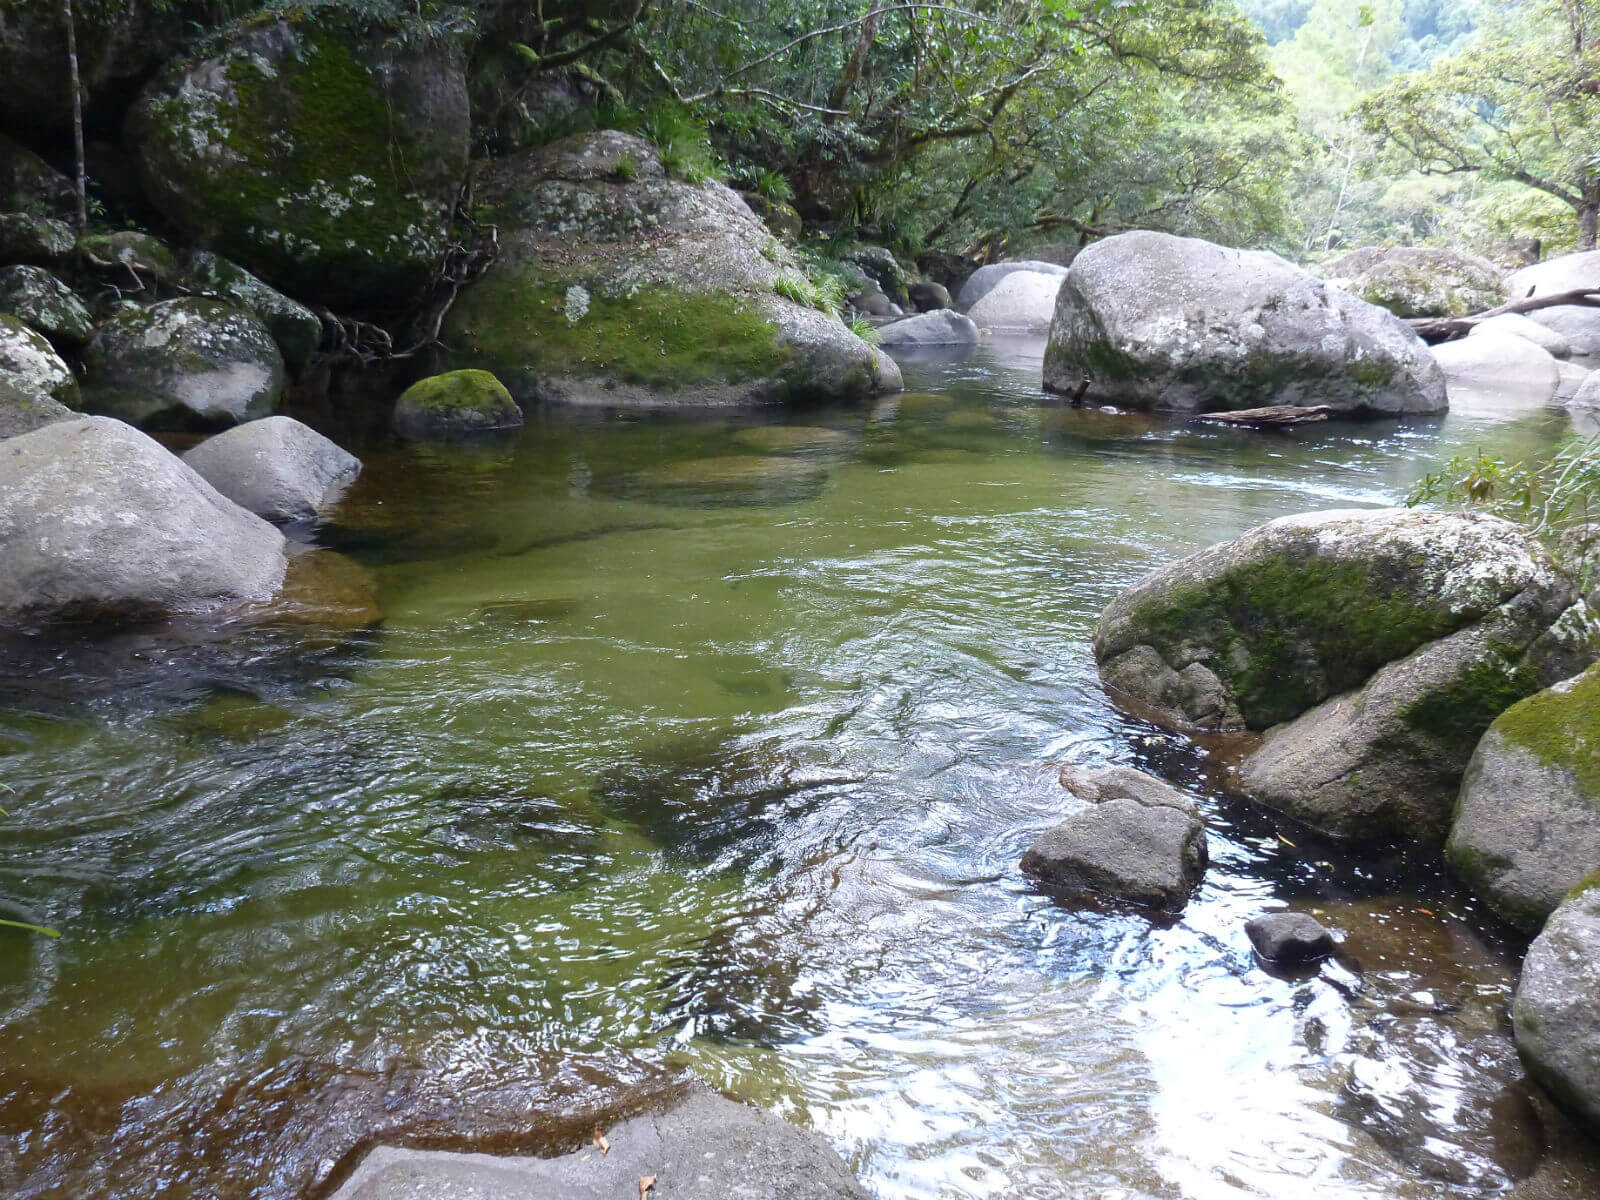 mossman gorge north queensland a travellers guide. Black Bedroom Furniture Sets. Home Design Ideas